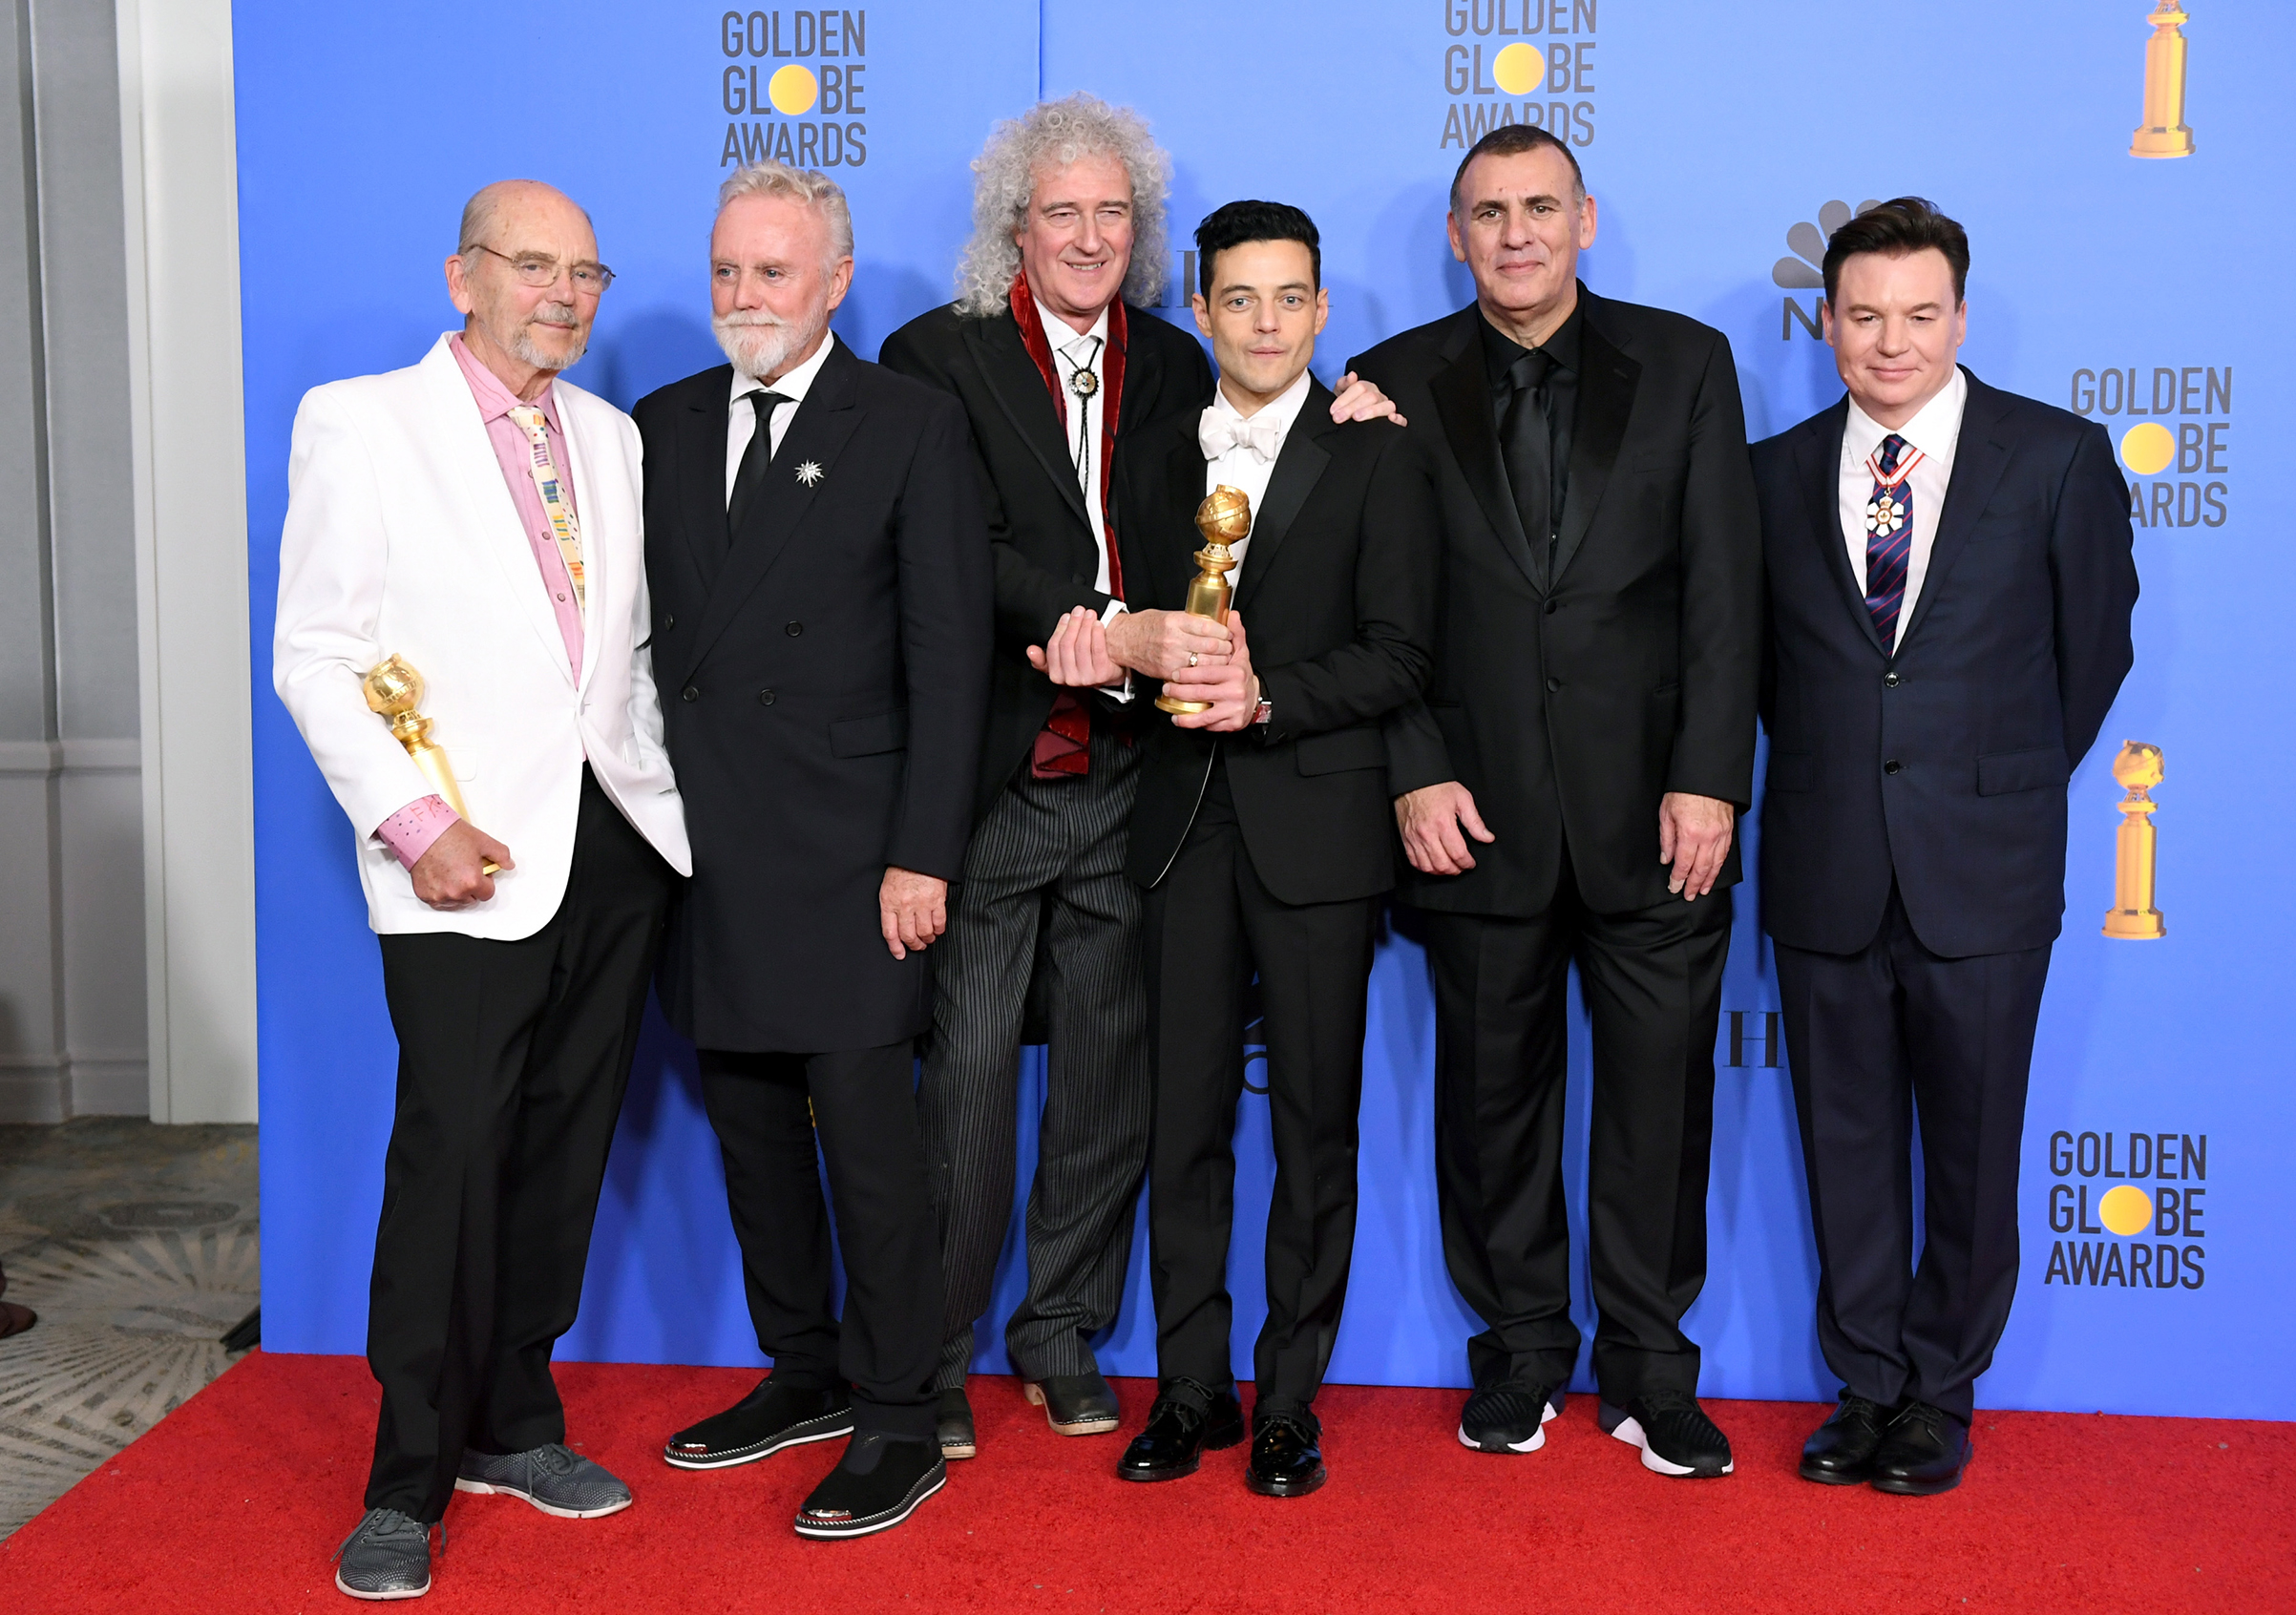 Jim Beach, Roger Taylor and Brian May of Queen, Best Actor in a Motion Picture Drama for 'Bohemian Rhapsody' winner Rami Malek, Producer Graham King, and Mike Myers pose in the press room during the 76th Annual Golden Globe Awards on Jan. 6, 2019 in Beverly Hills.